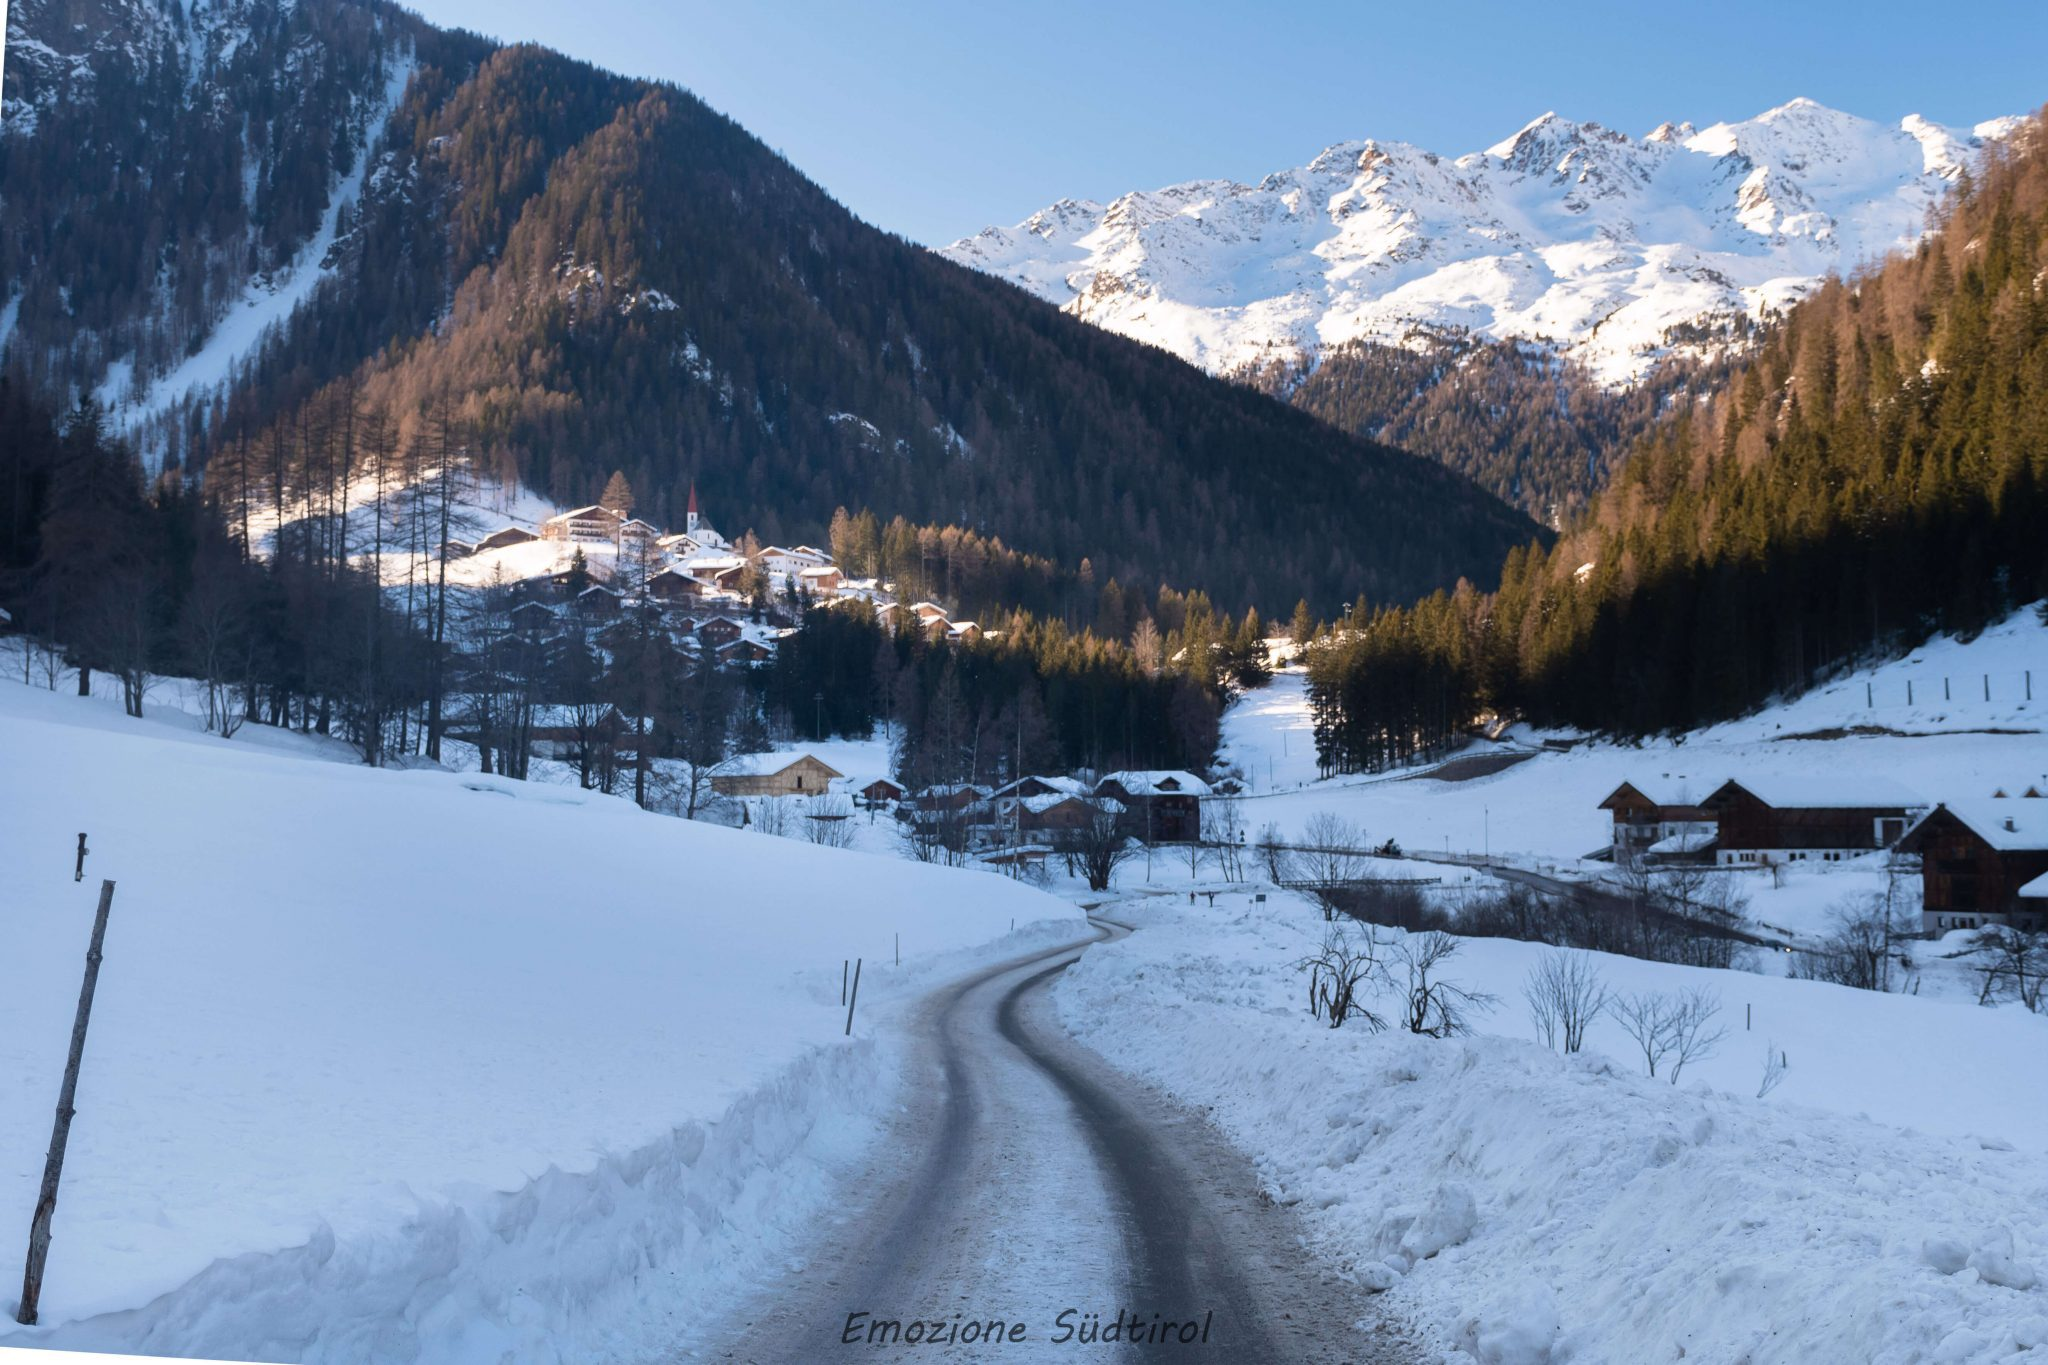 On the road in Val d'Ultimo in inverno